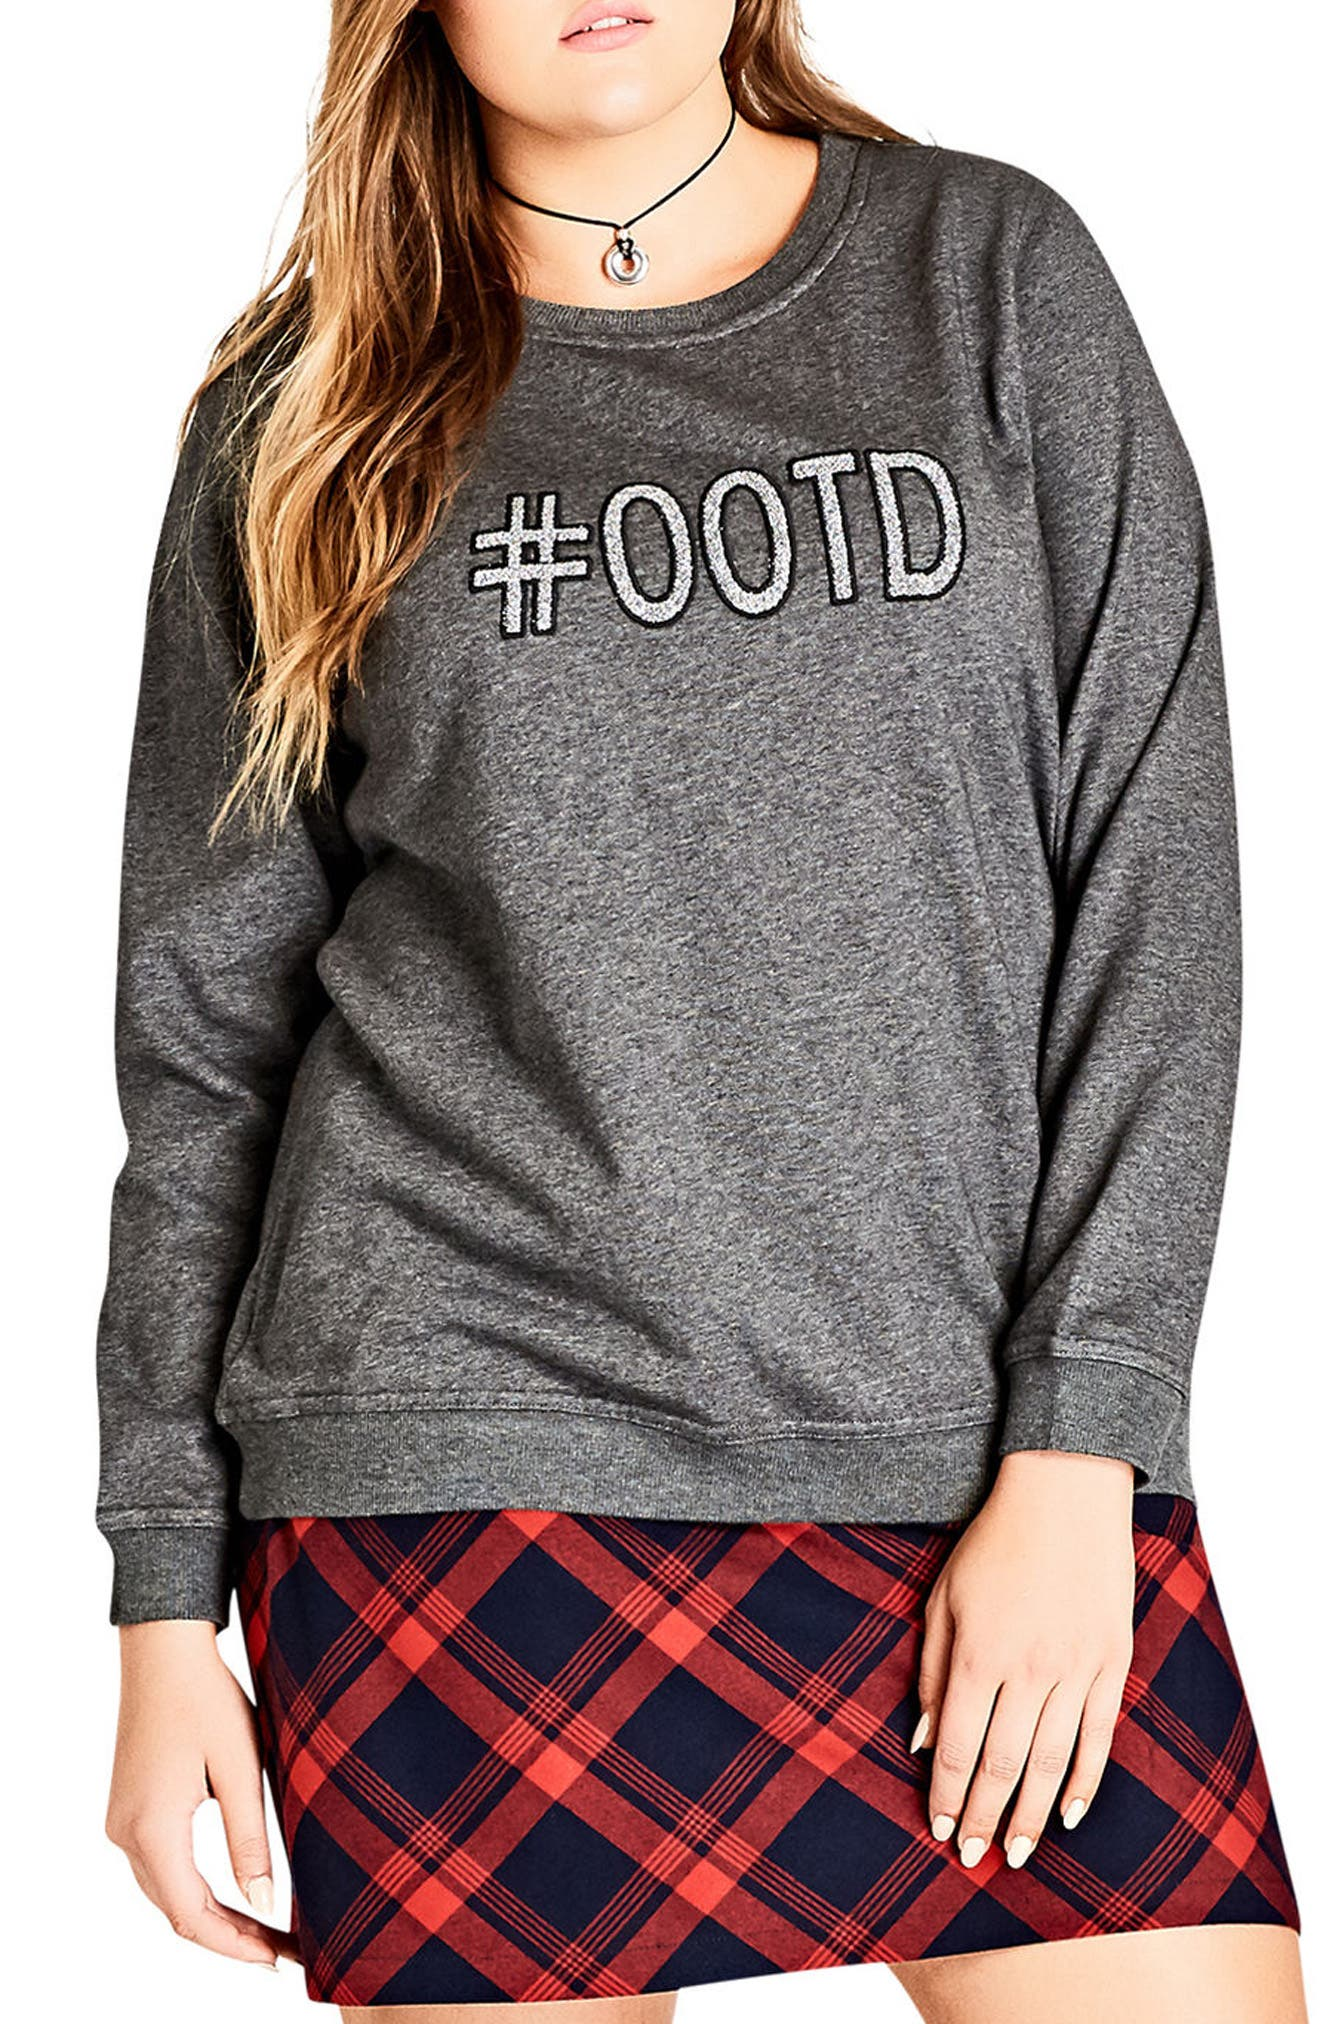 #OOTD Sweatshirt,                             Main thumbnail 1, color,